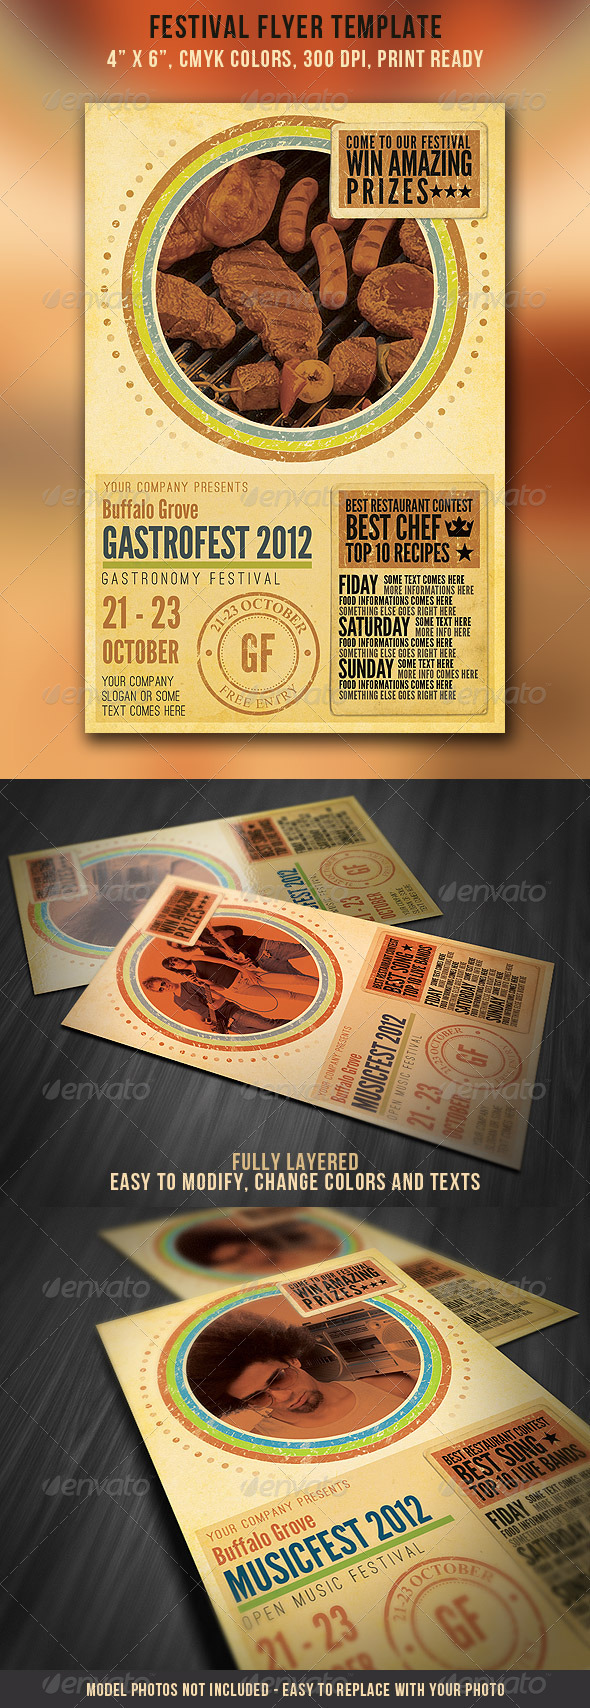 Festival Flyer Template - Events Flyers